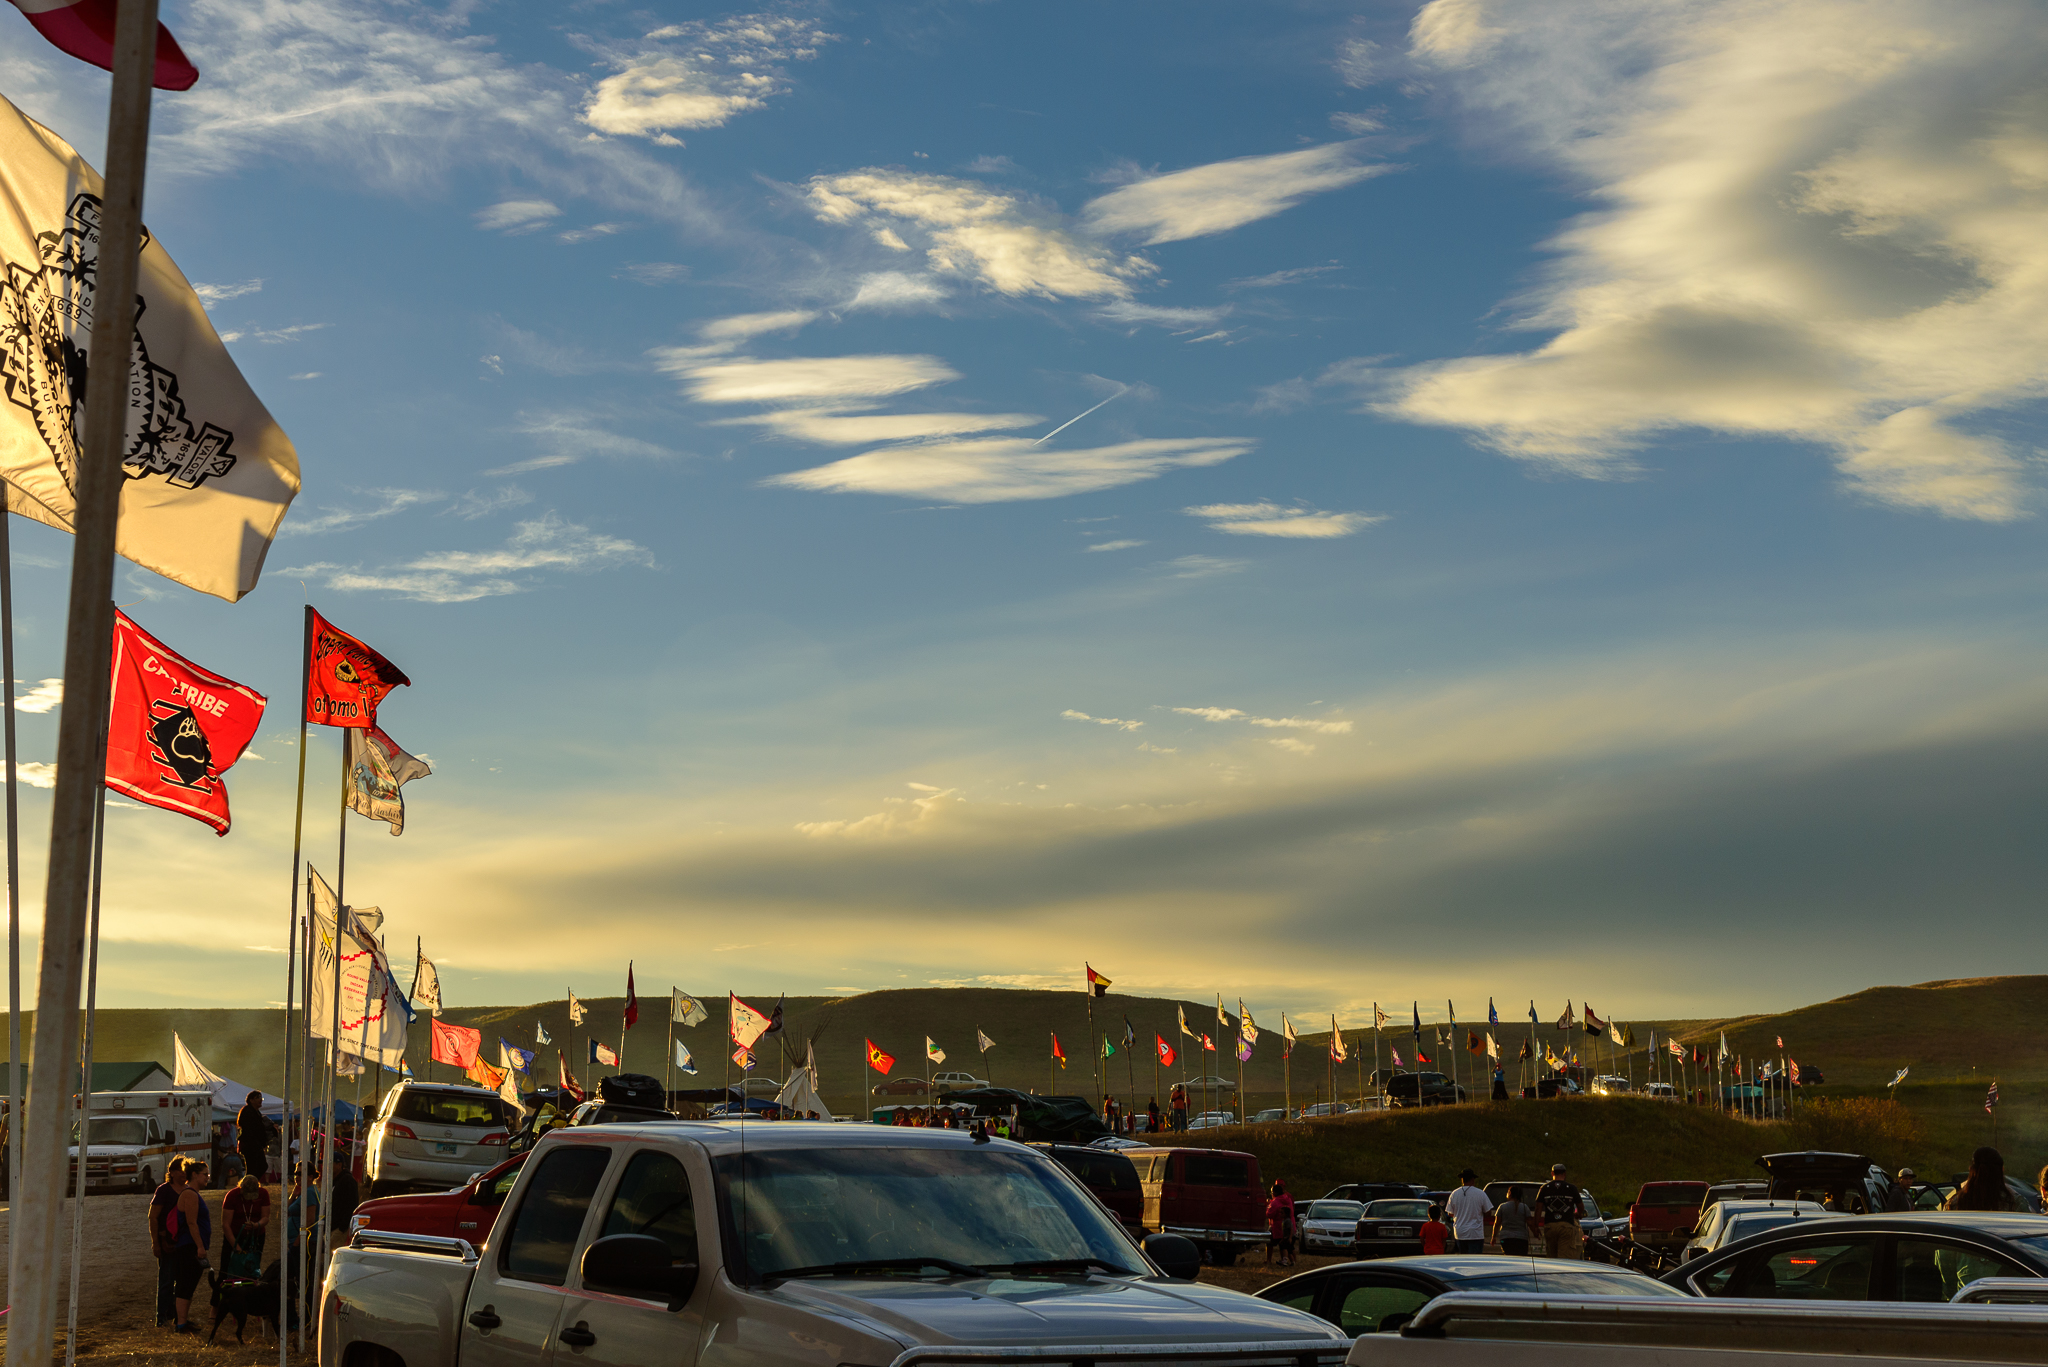 The banners of those joining forces. Standing Rock Reservation Area, ND.